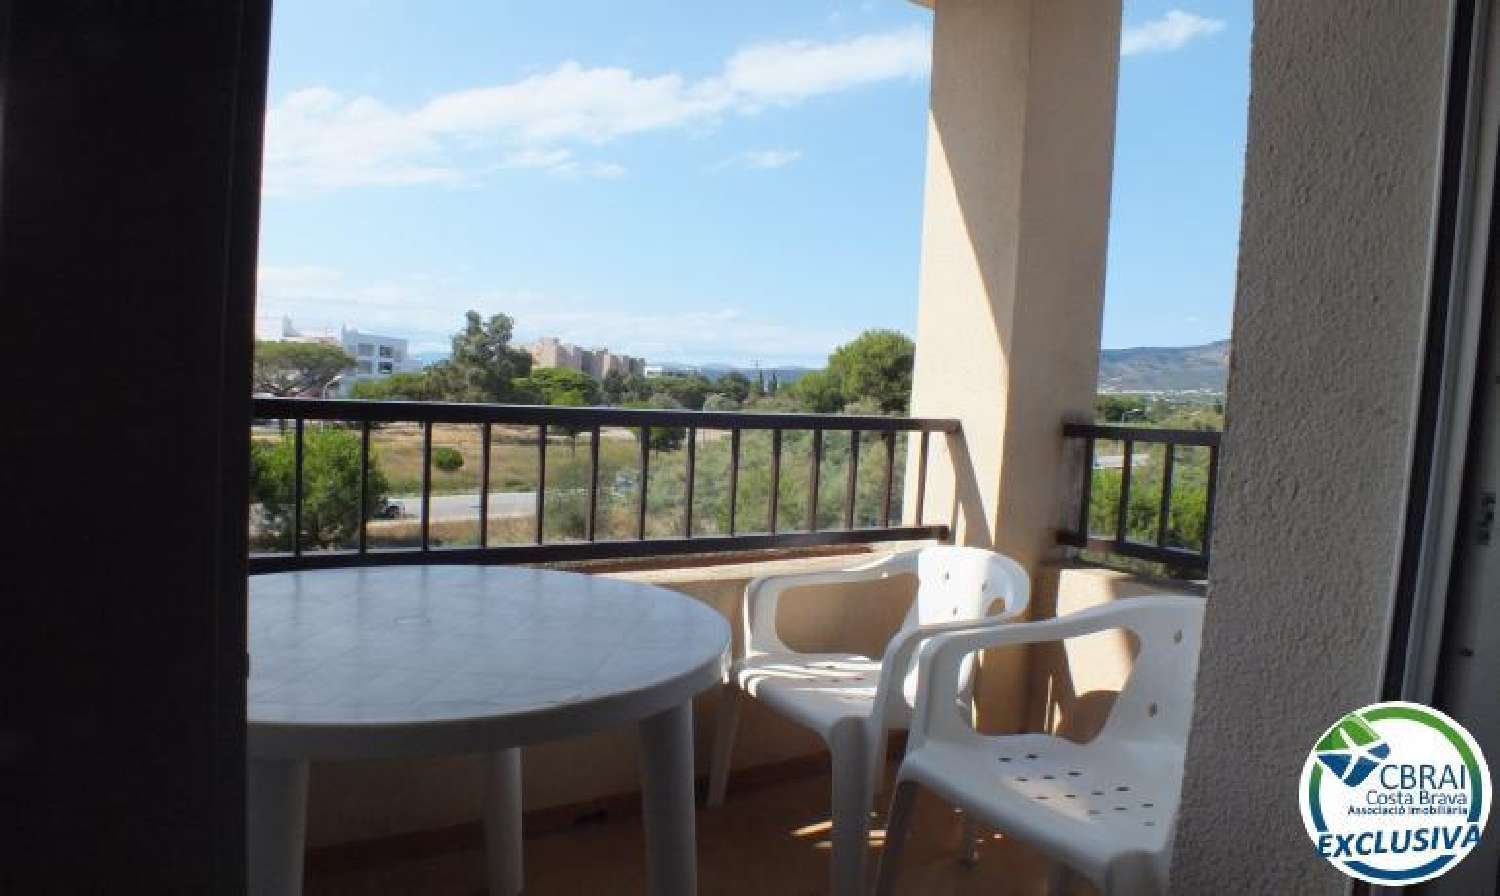 roses girona appartement foto 4645940